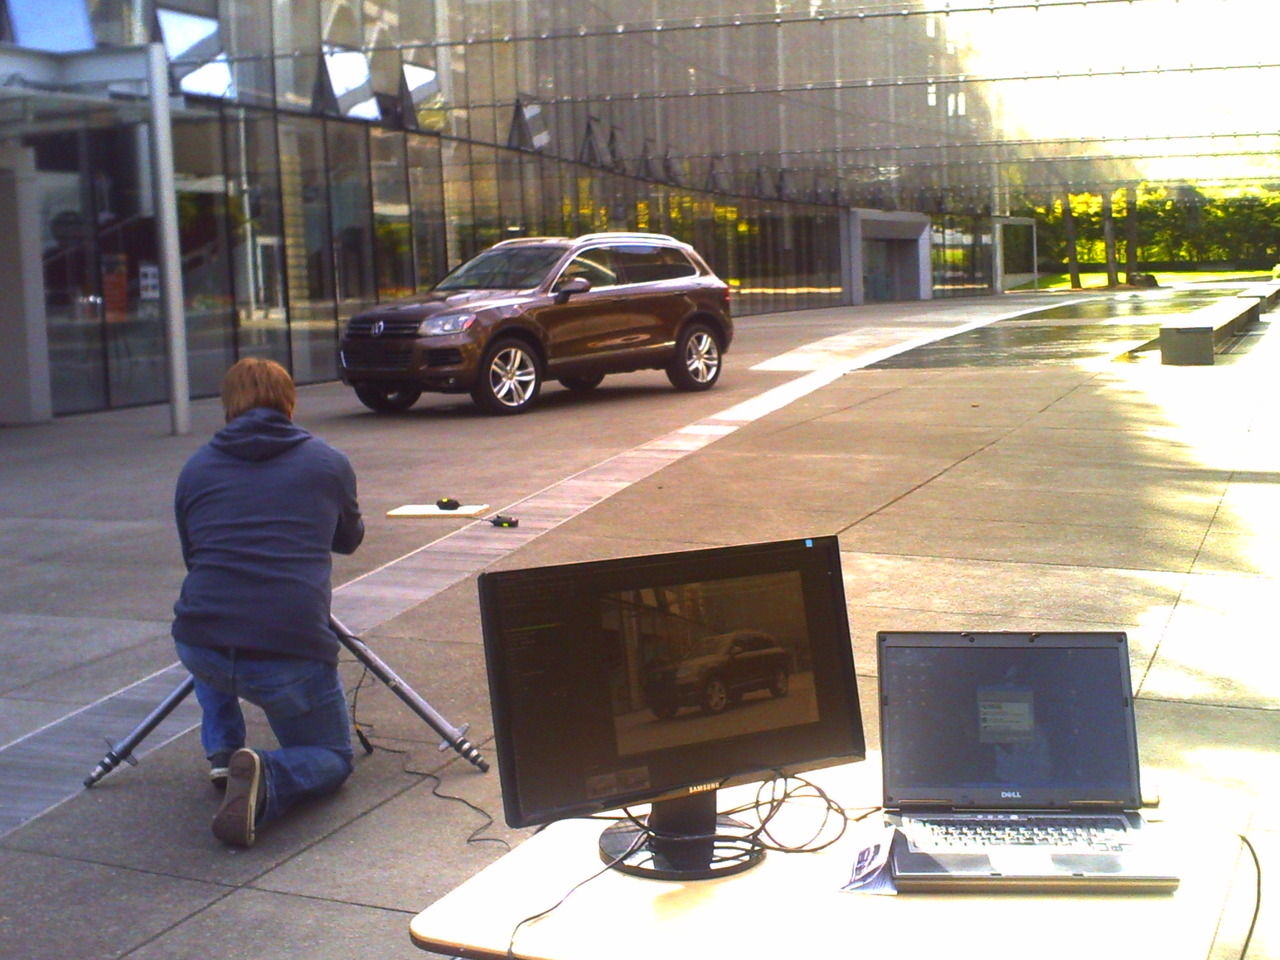 Our shoot was the first photo shoot ever at this location. Apparently the structural architect wasn't sure if the concrete could hold the weight of a vehicle until just a couple of weeks before the shoot. I guess several other automobile manufactures had requesting to shoot here prior to this too. Photographer Scott Gilbert seen here in action, killing it.